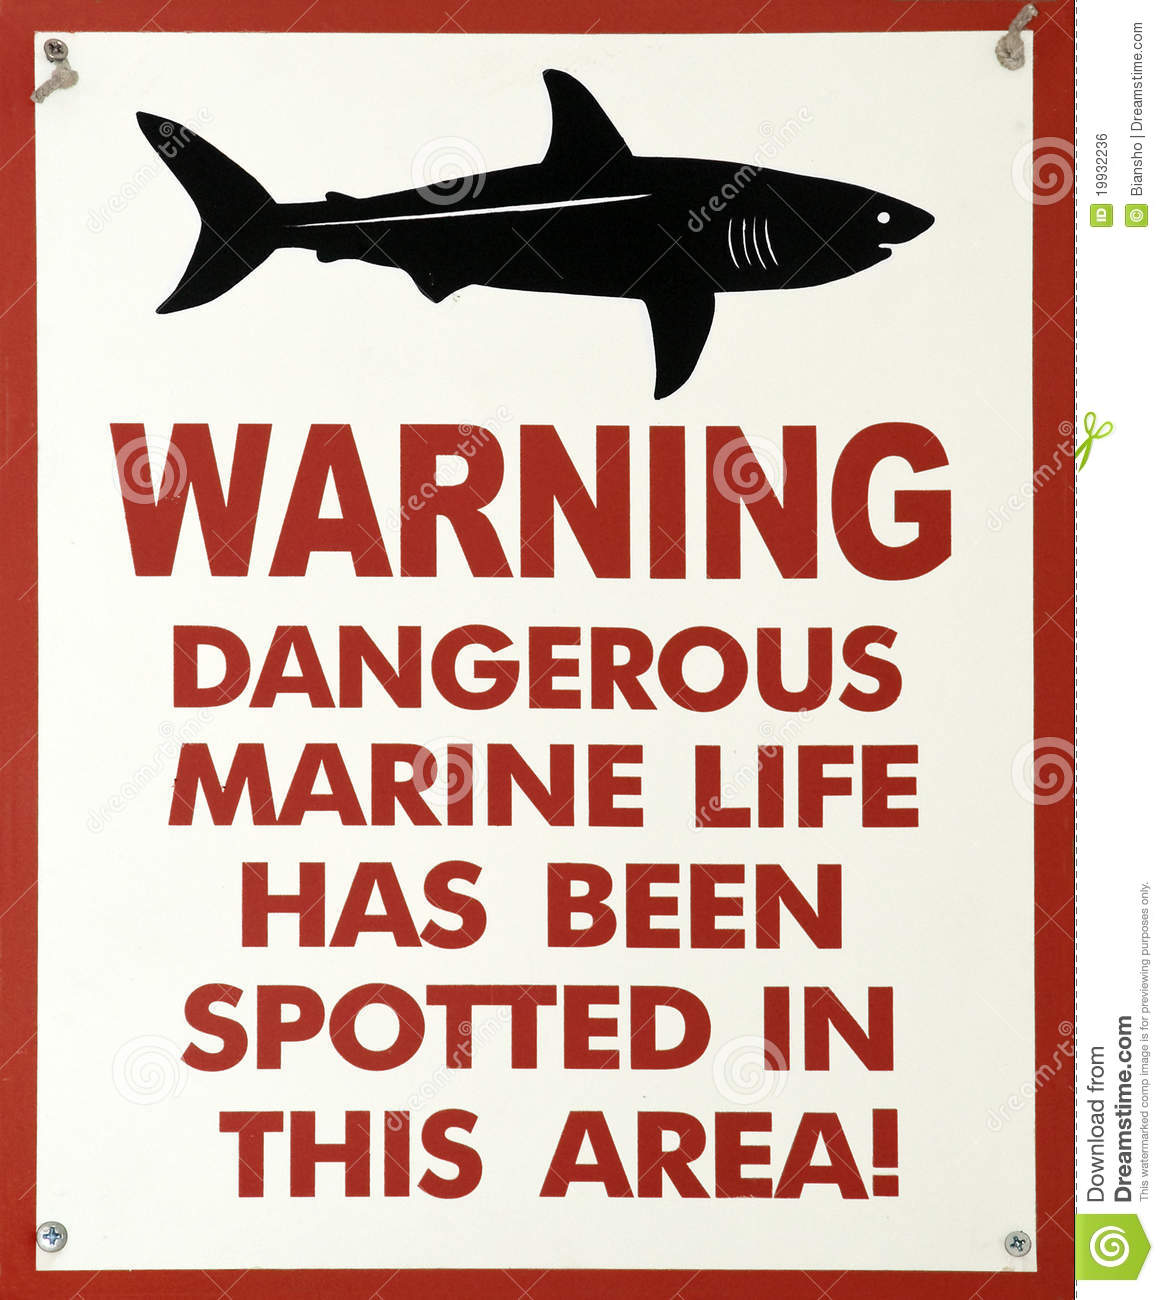 Shark Warning Sign Royalty Free Stock Image - Image: 19932236